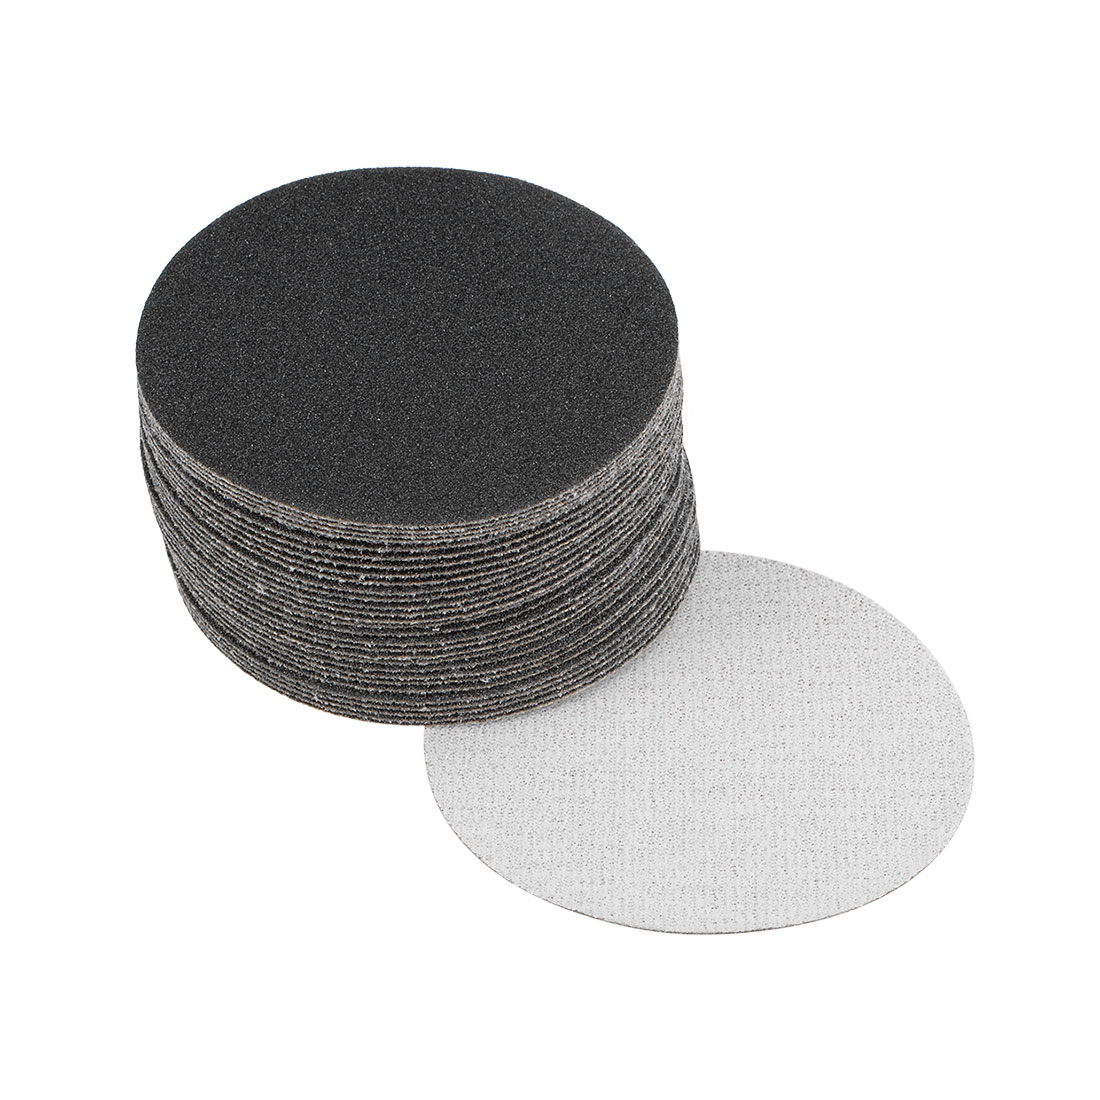 3 inch Wet Dry Discs 120 Grit Hook and Loop Sanding Disc Silicon Carbide 30pcs